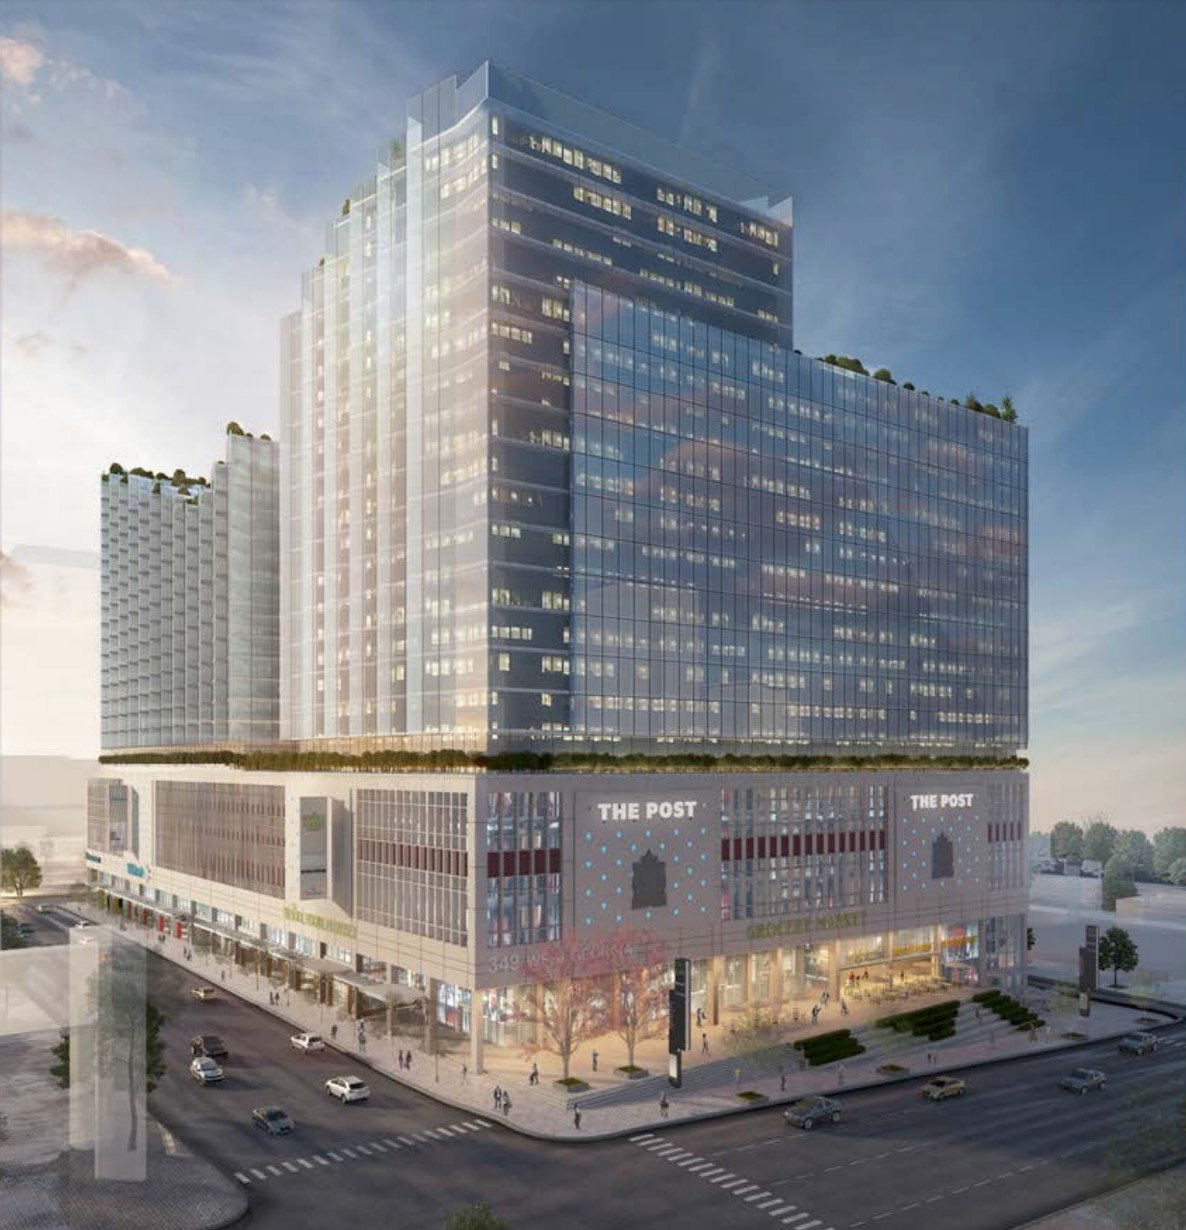 Vancouver Housing: New Models Of Downtown Vancouver Post Office Redevelopment